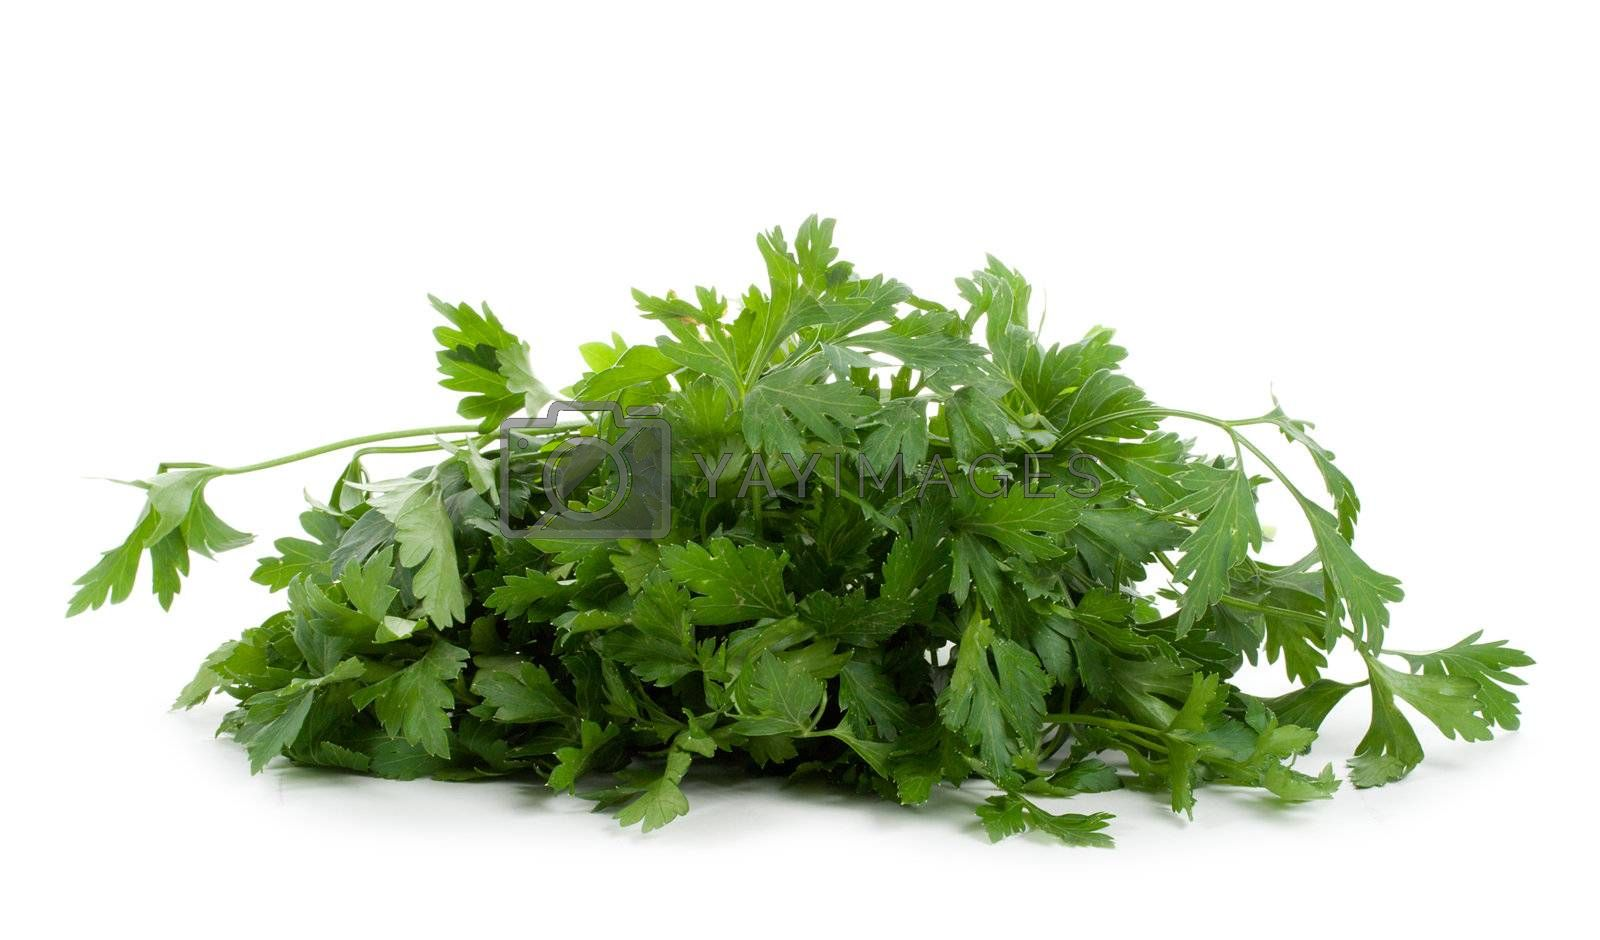 bunch of green parsley, isolated on white